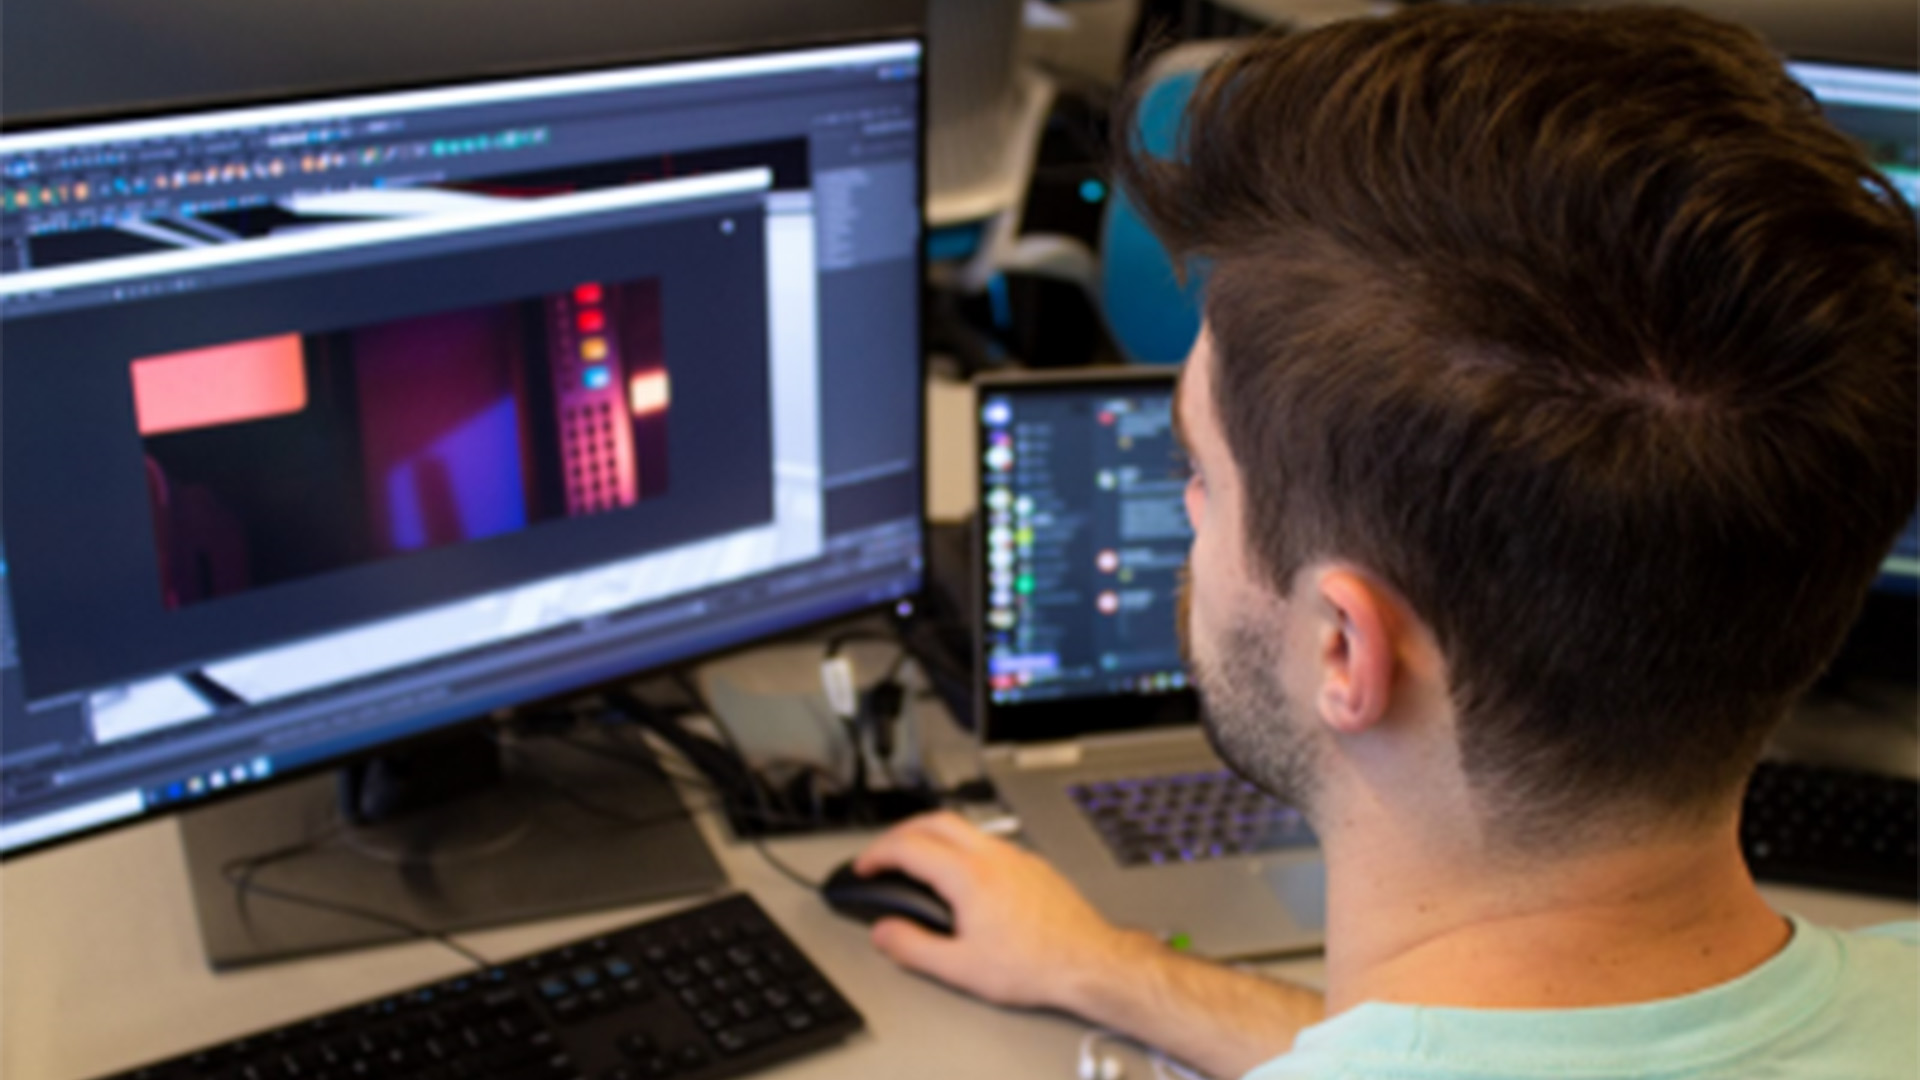 Student working on computer animation in CG lab